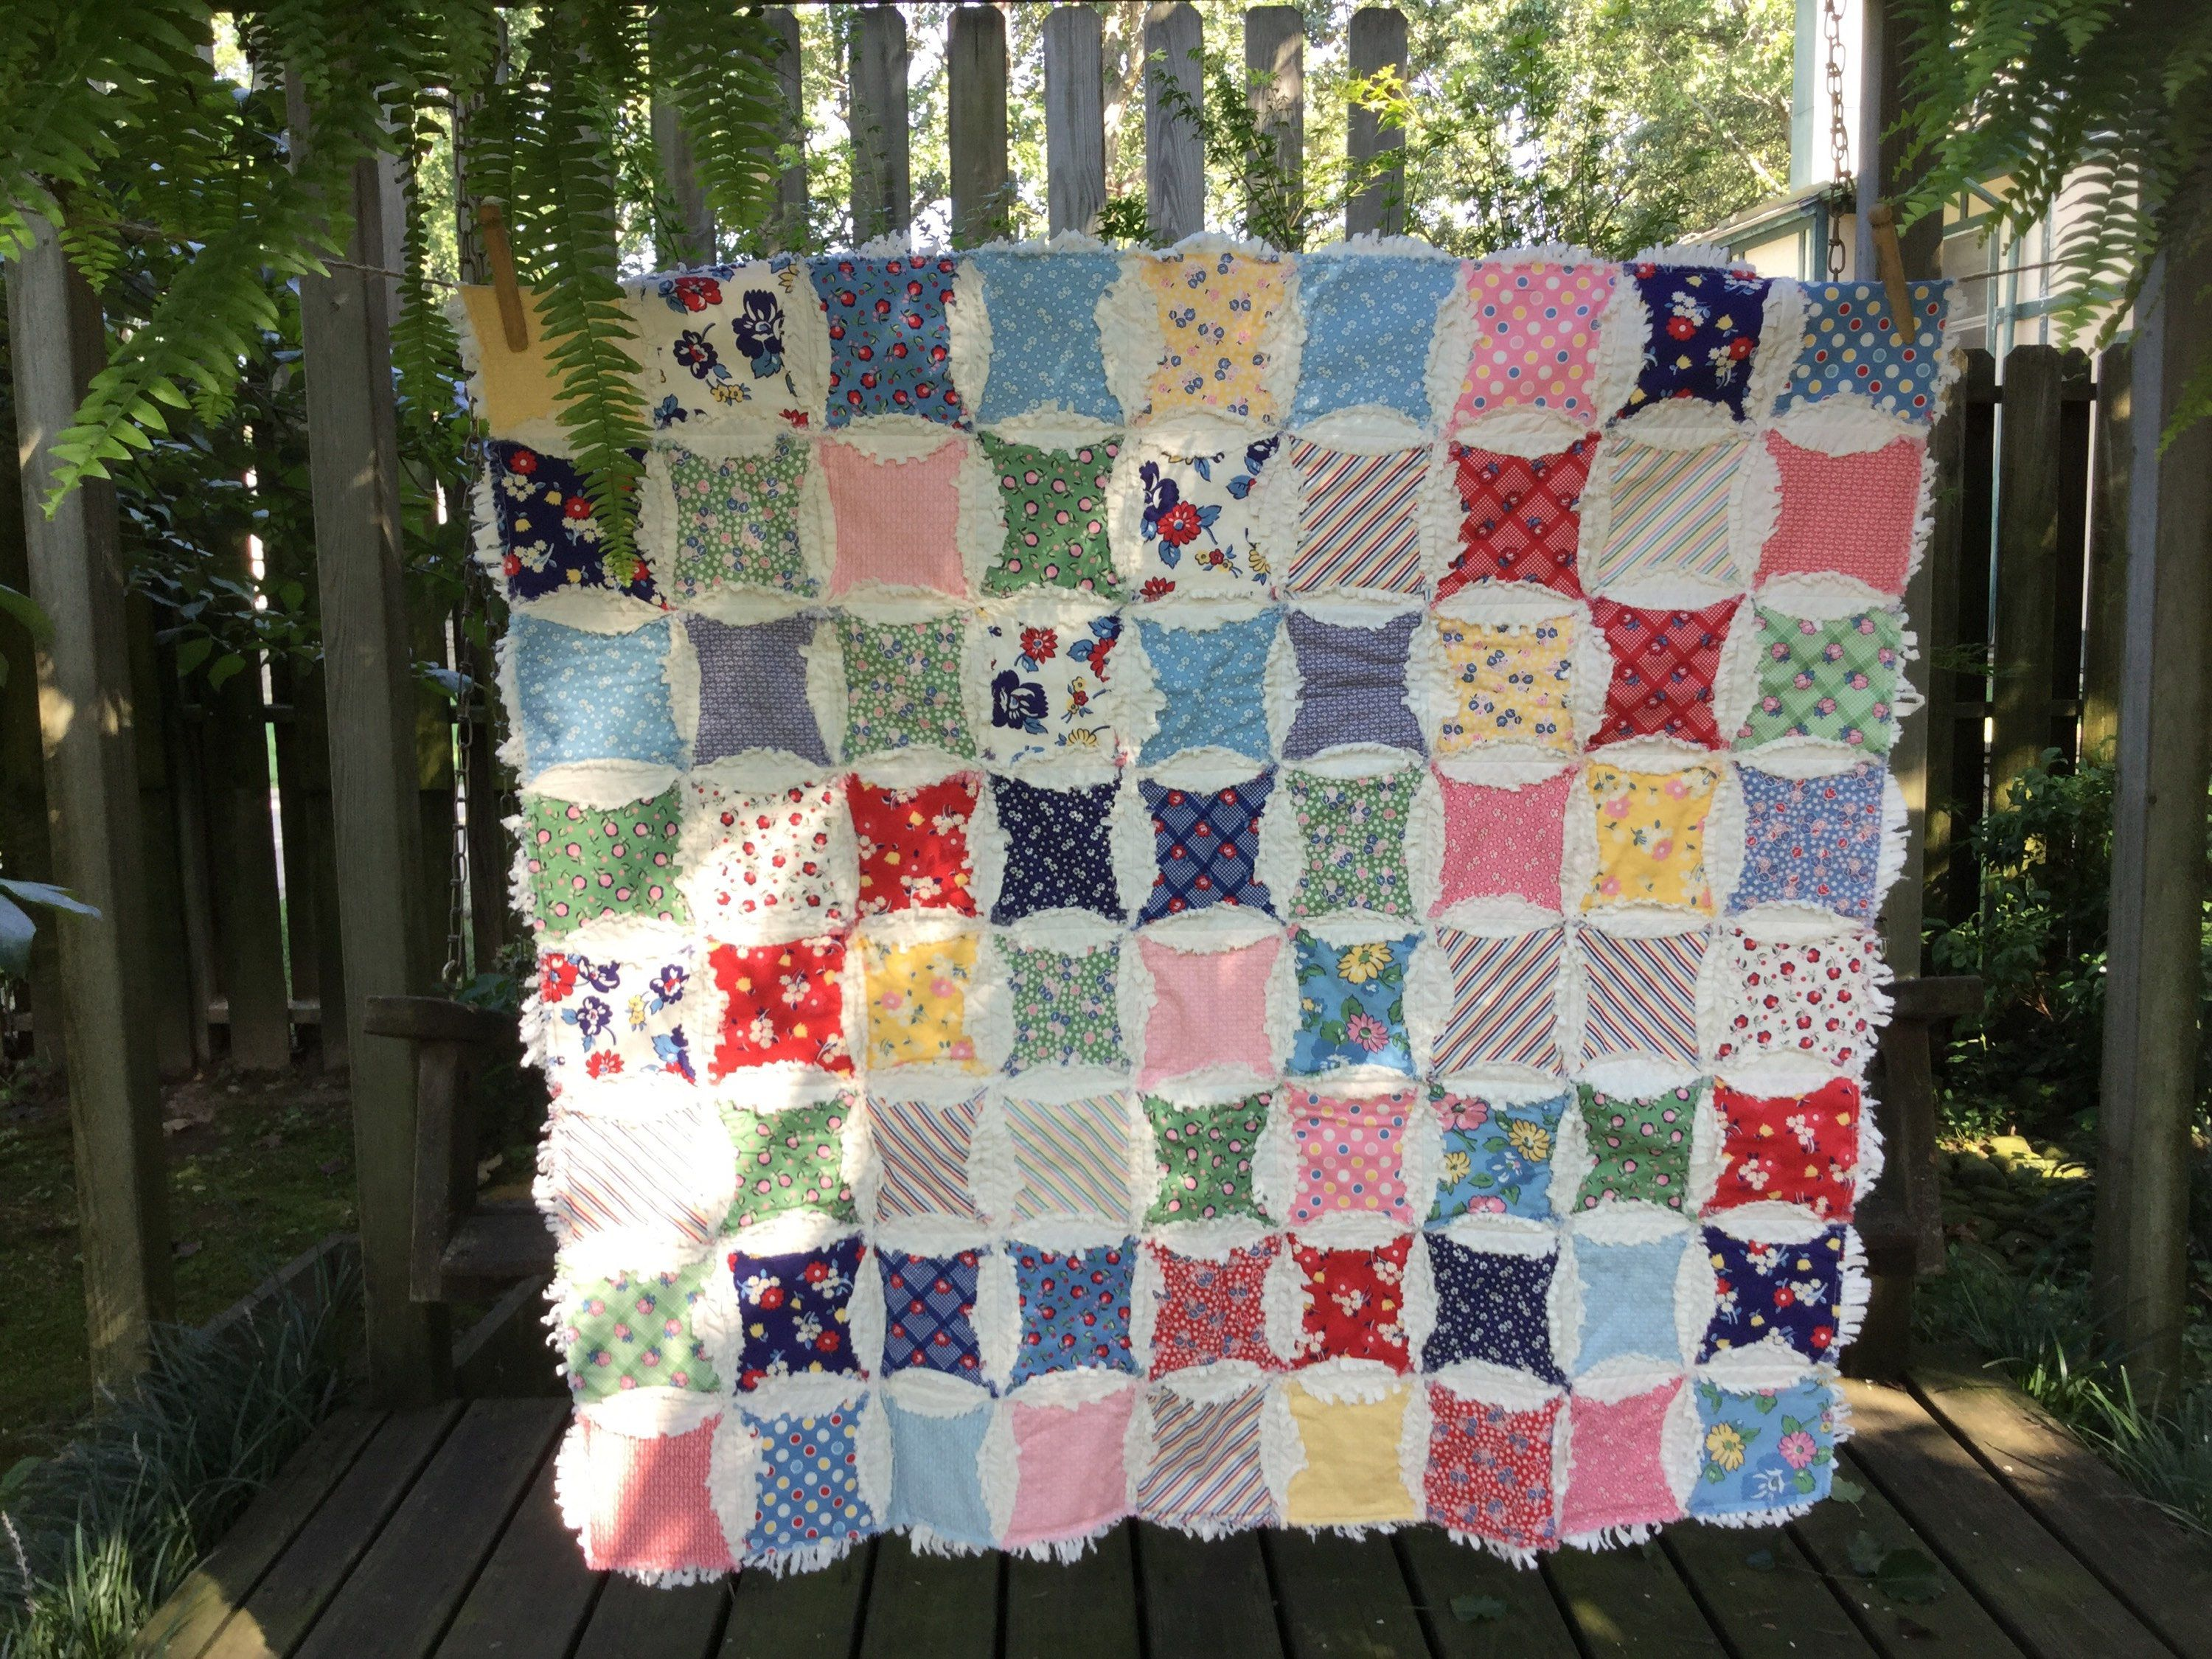 cathedral window rag quilt, 1930s circle rag quilt, vintage look ... : cathedral window rag quilt - Adamdwight.com